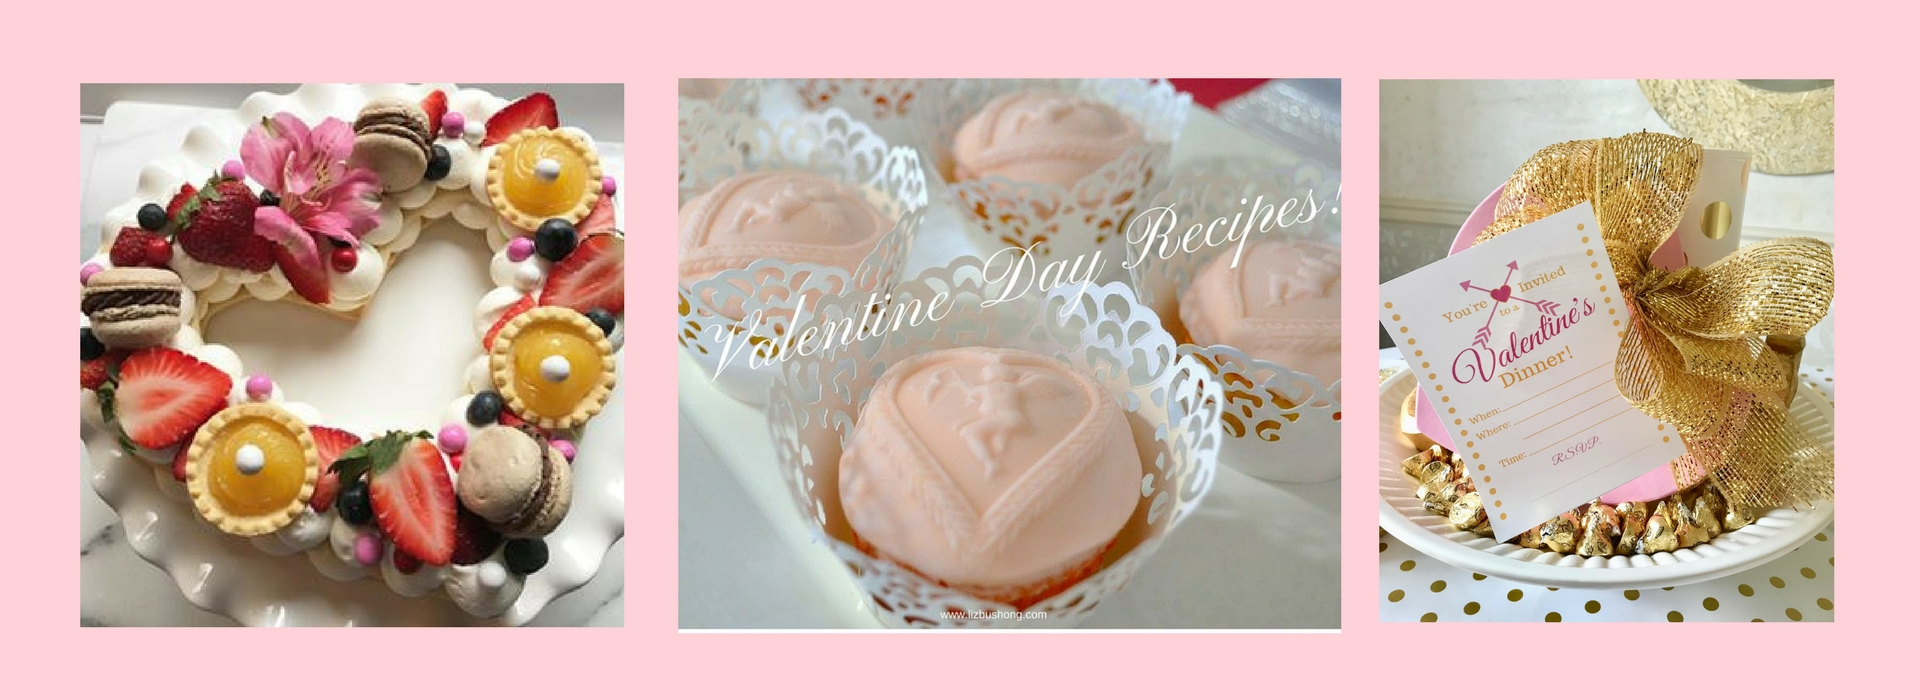 Valentine Recipes -slider- lizbushong.com